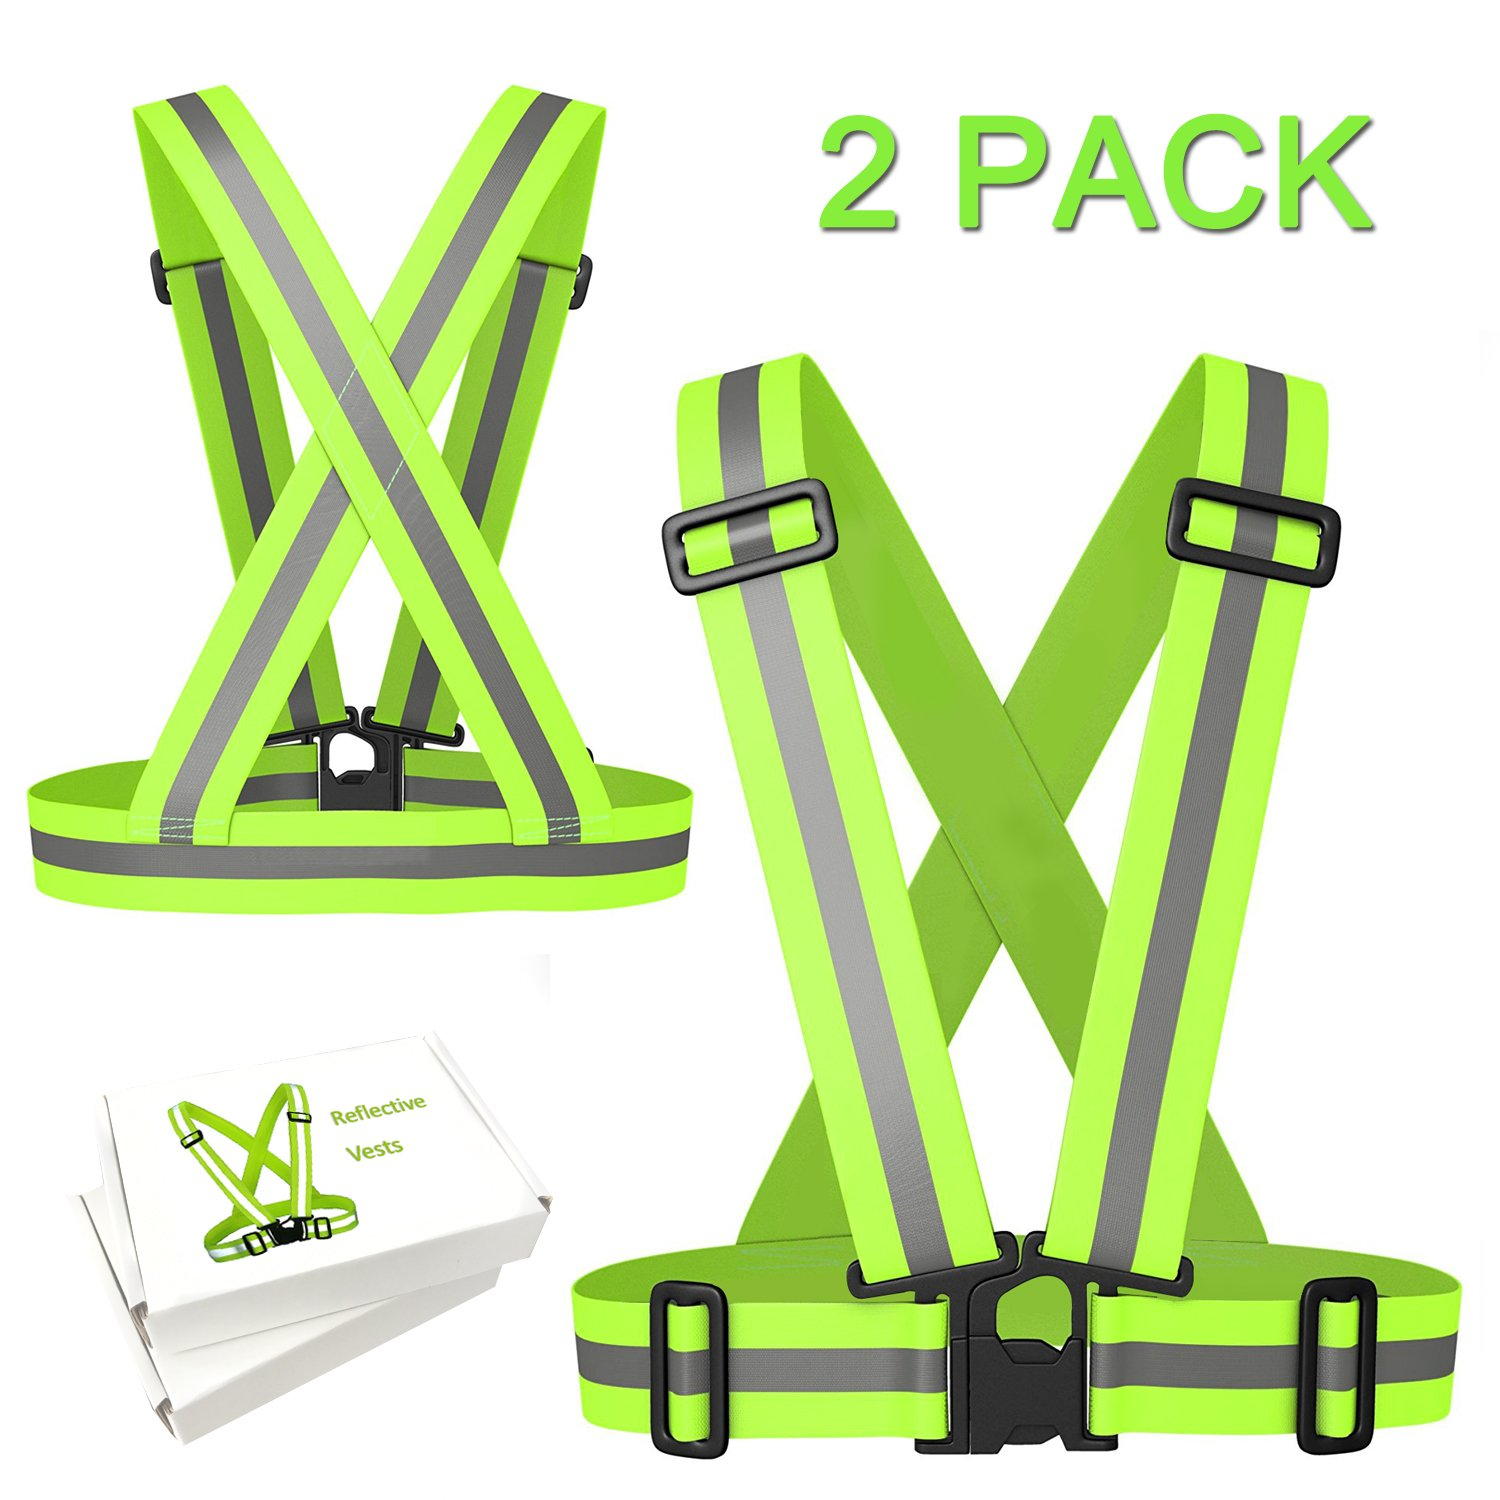 ANGESHEN Reflective Vest (2 Pack) Lightweight, Adjustable & Elastic Safety & High Visibility for Running, Jogging, Walking, Cycling | Fits Over Outdoor Clothing - Motorcycle Jacket//Shirt